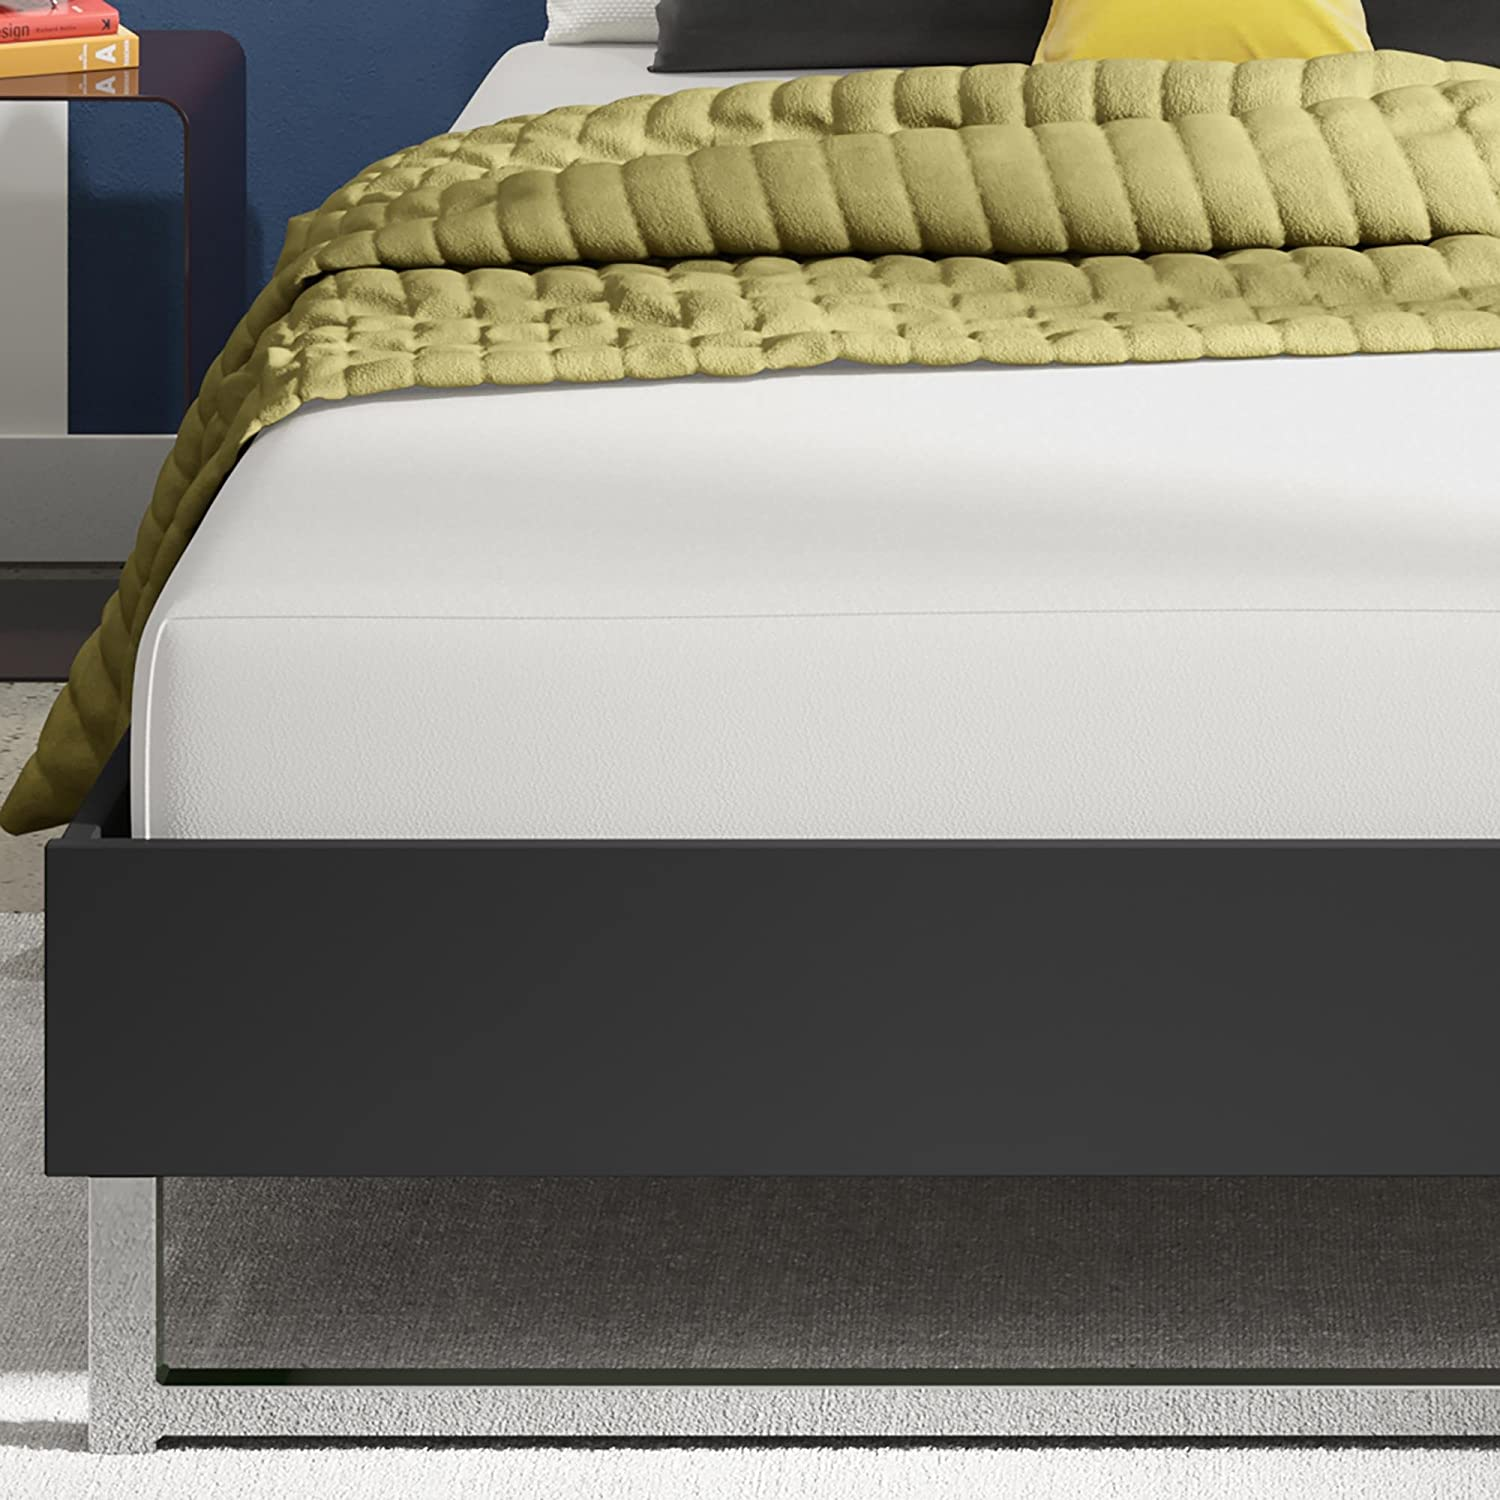 Signature Sleep Memoir 8-Inch Memory Foam Mattress